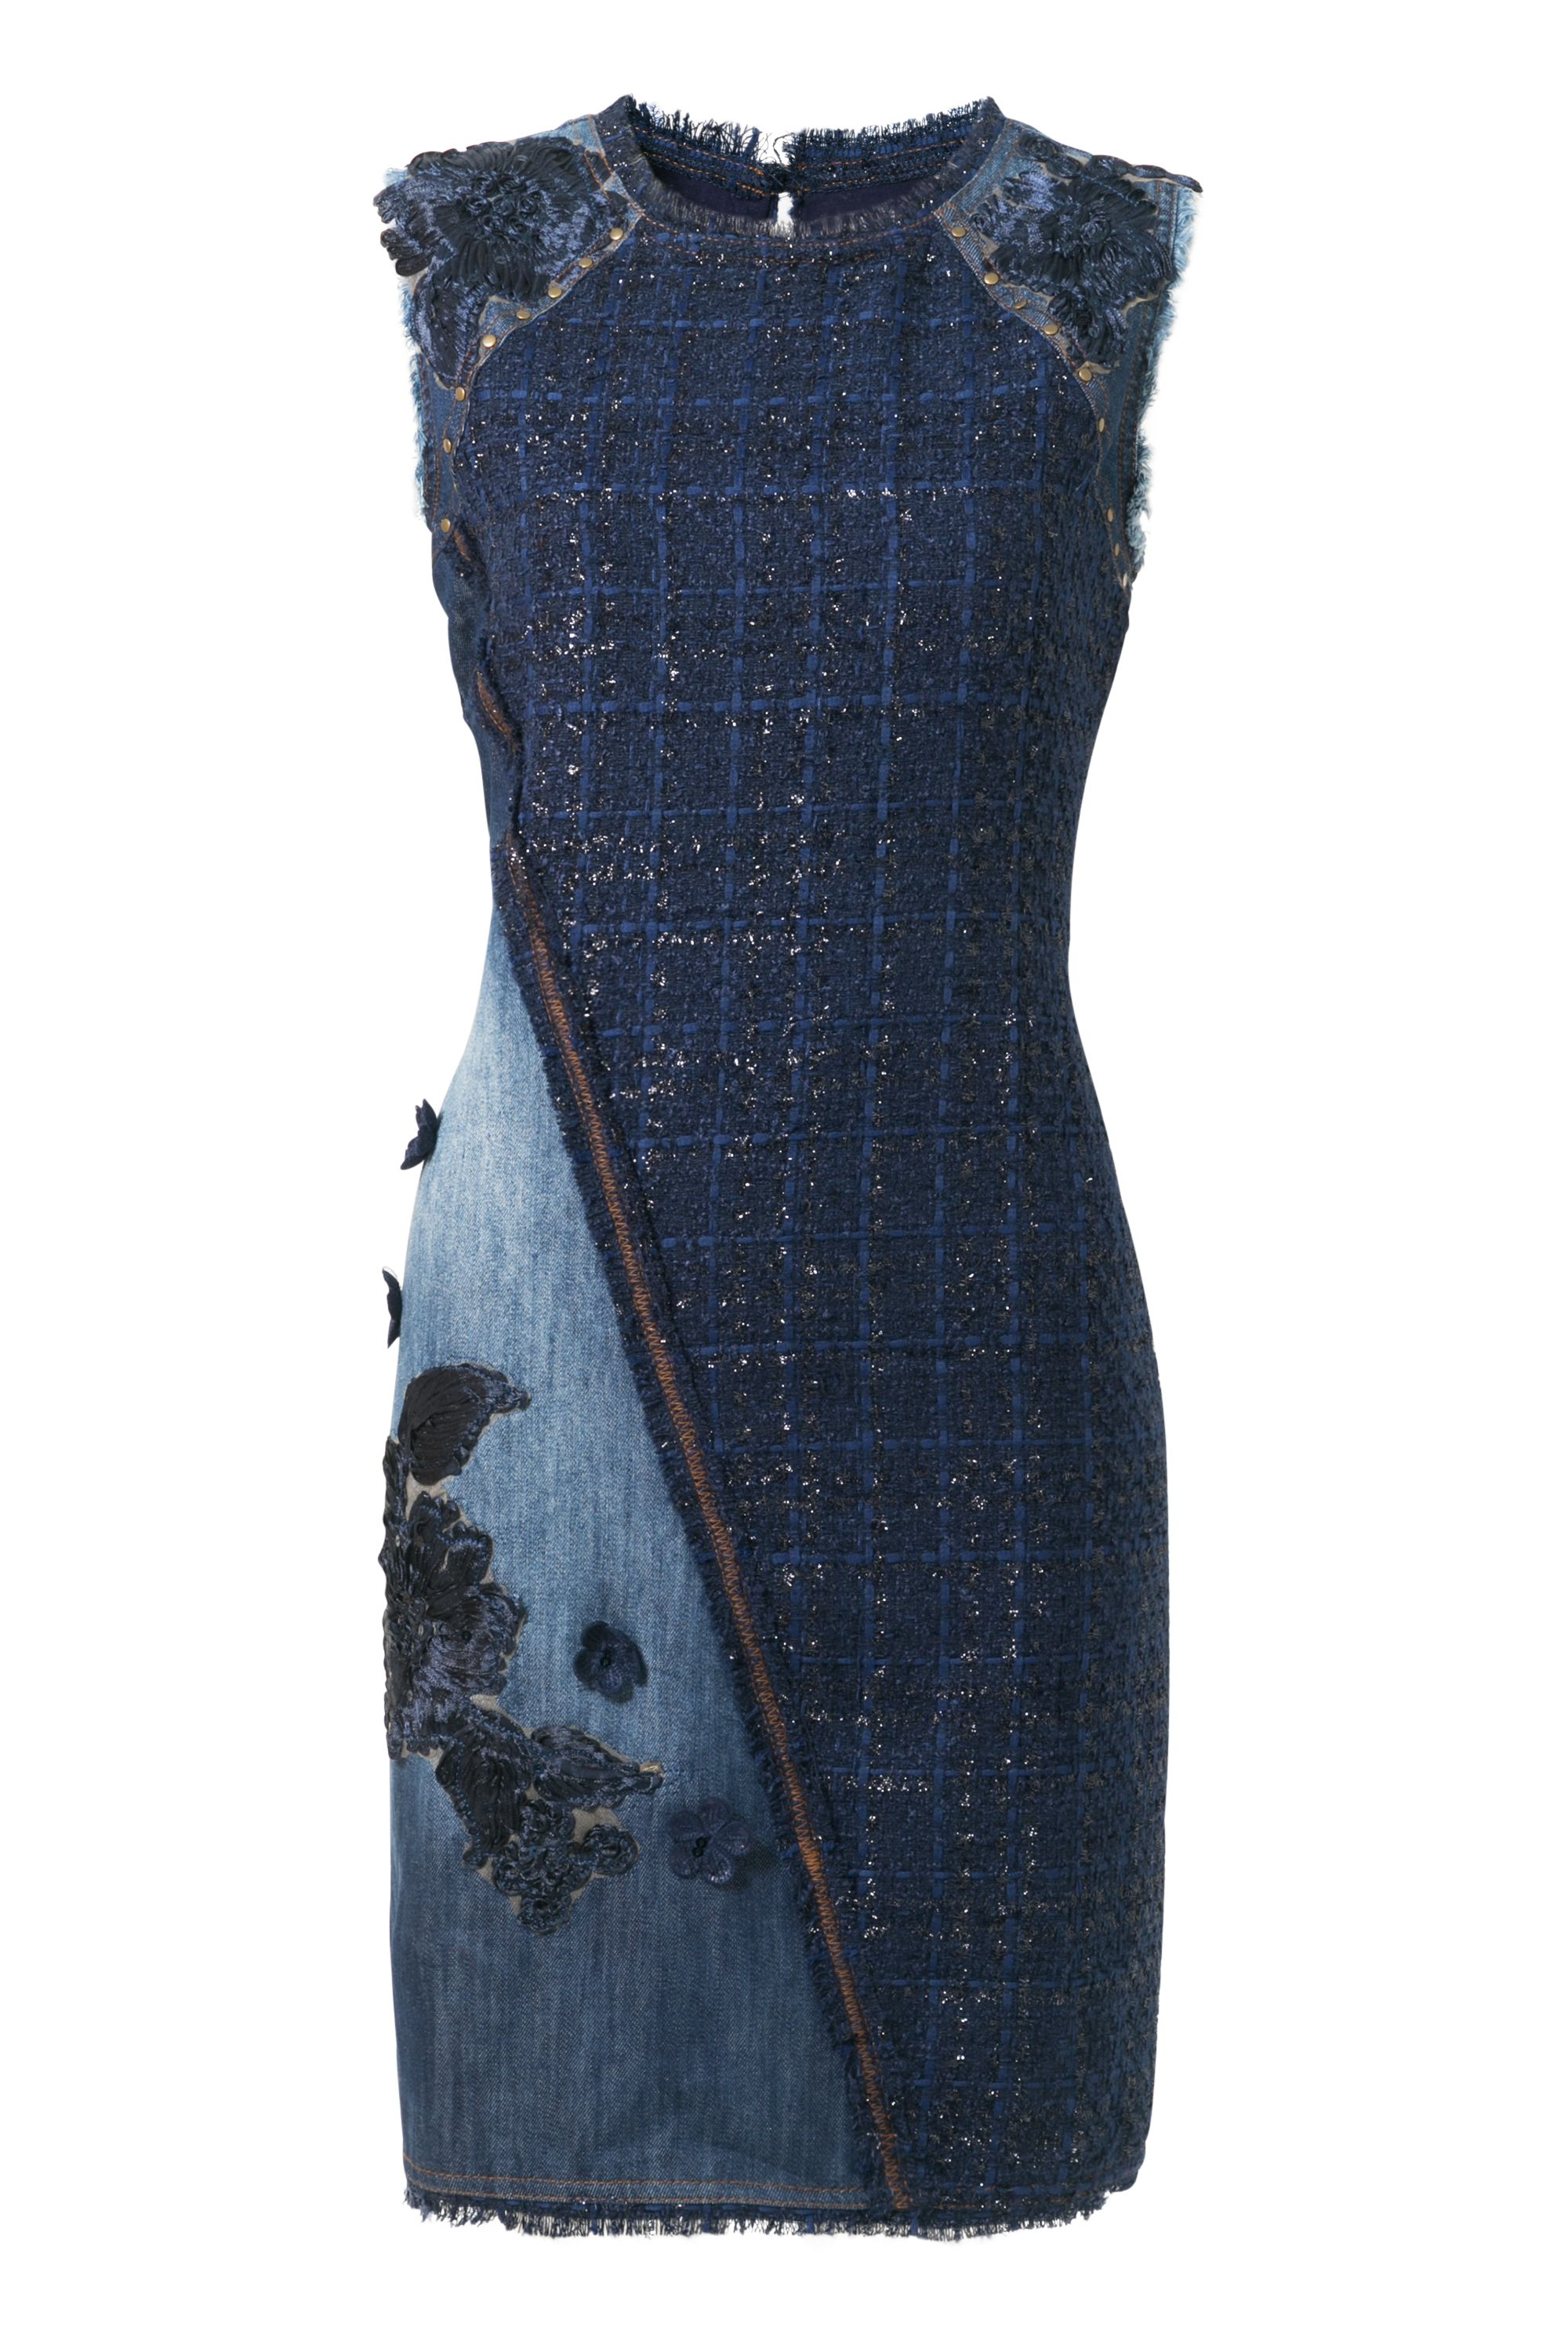 Desigual Dress Achille, Blue